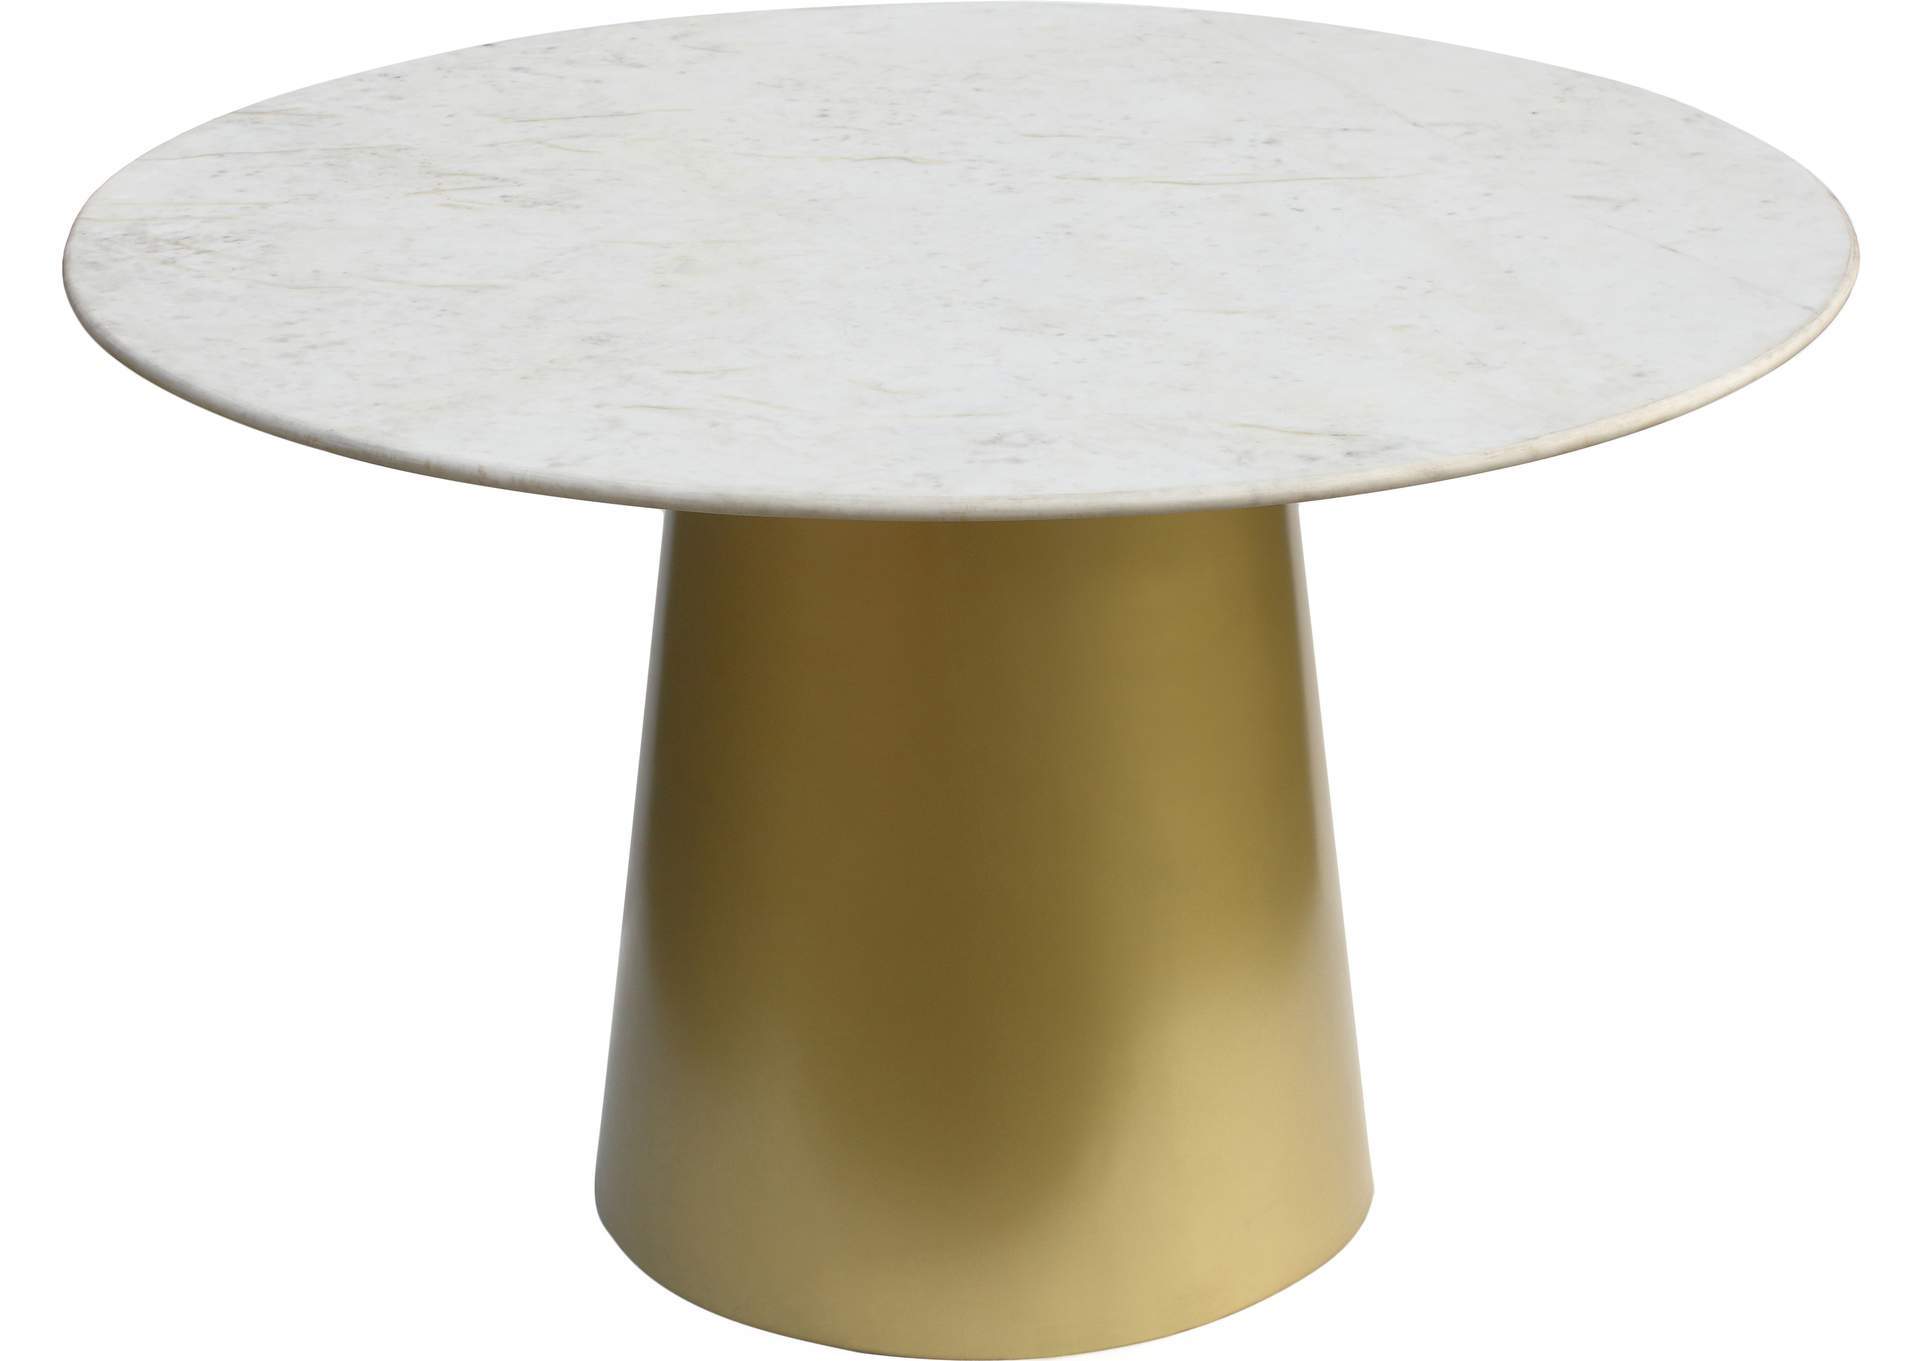 Sorrento Dining Table,Meridian Furniture